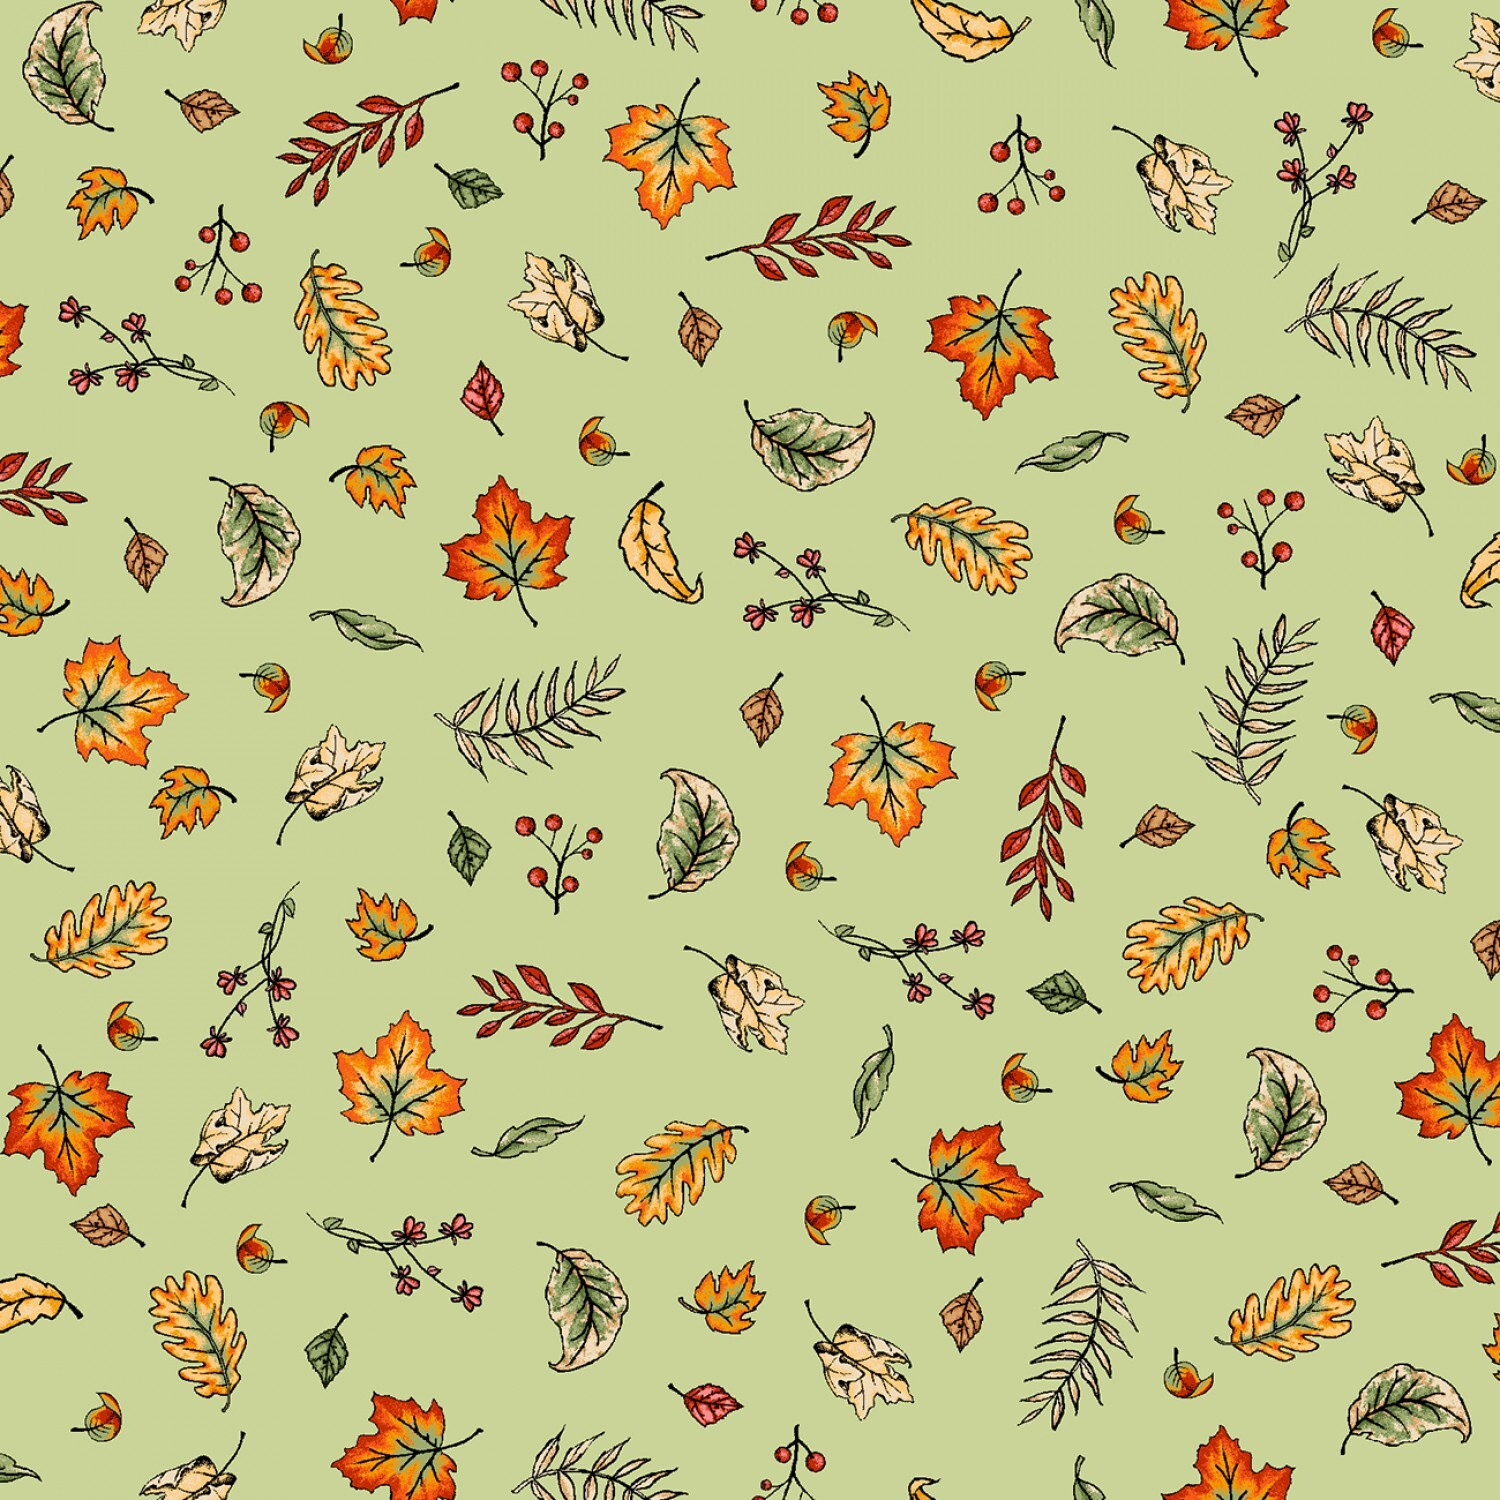 Sweater Weather - Green Blowing Leaves - 1/2m cut 57982